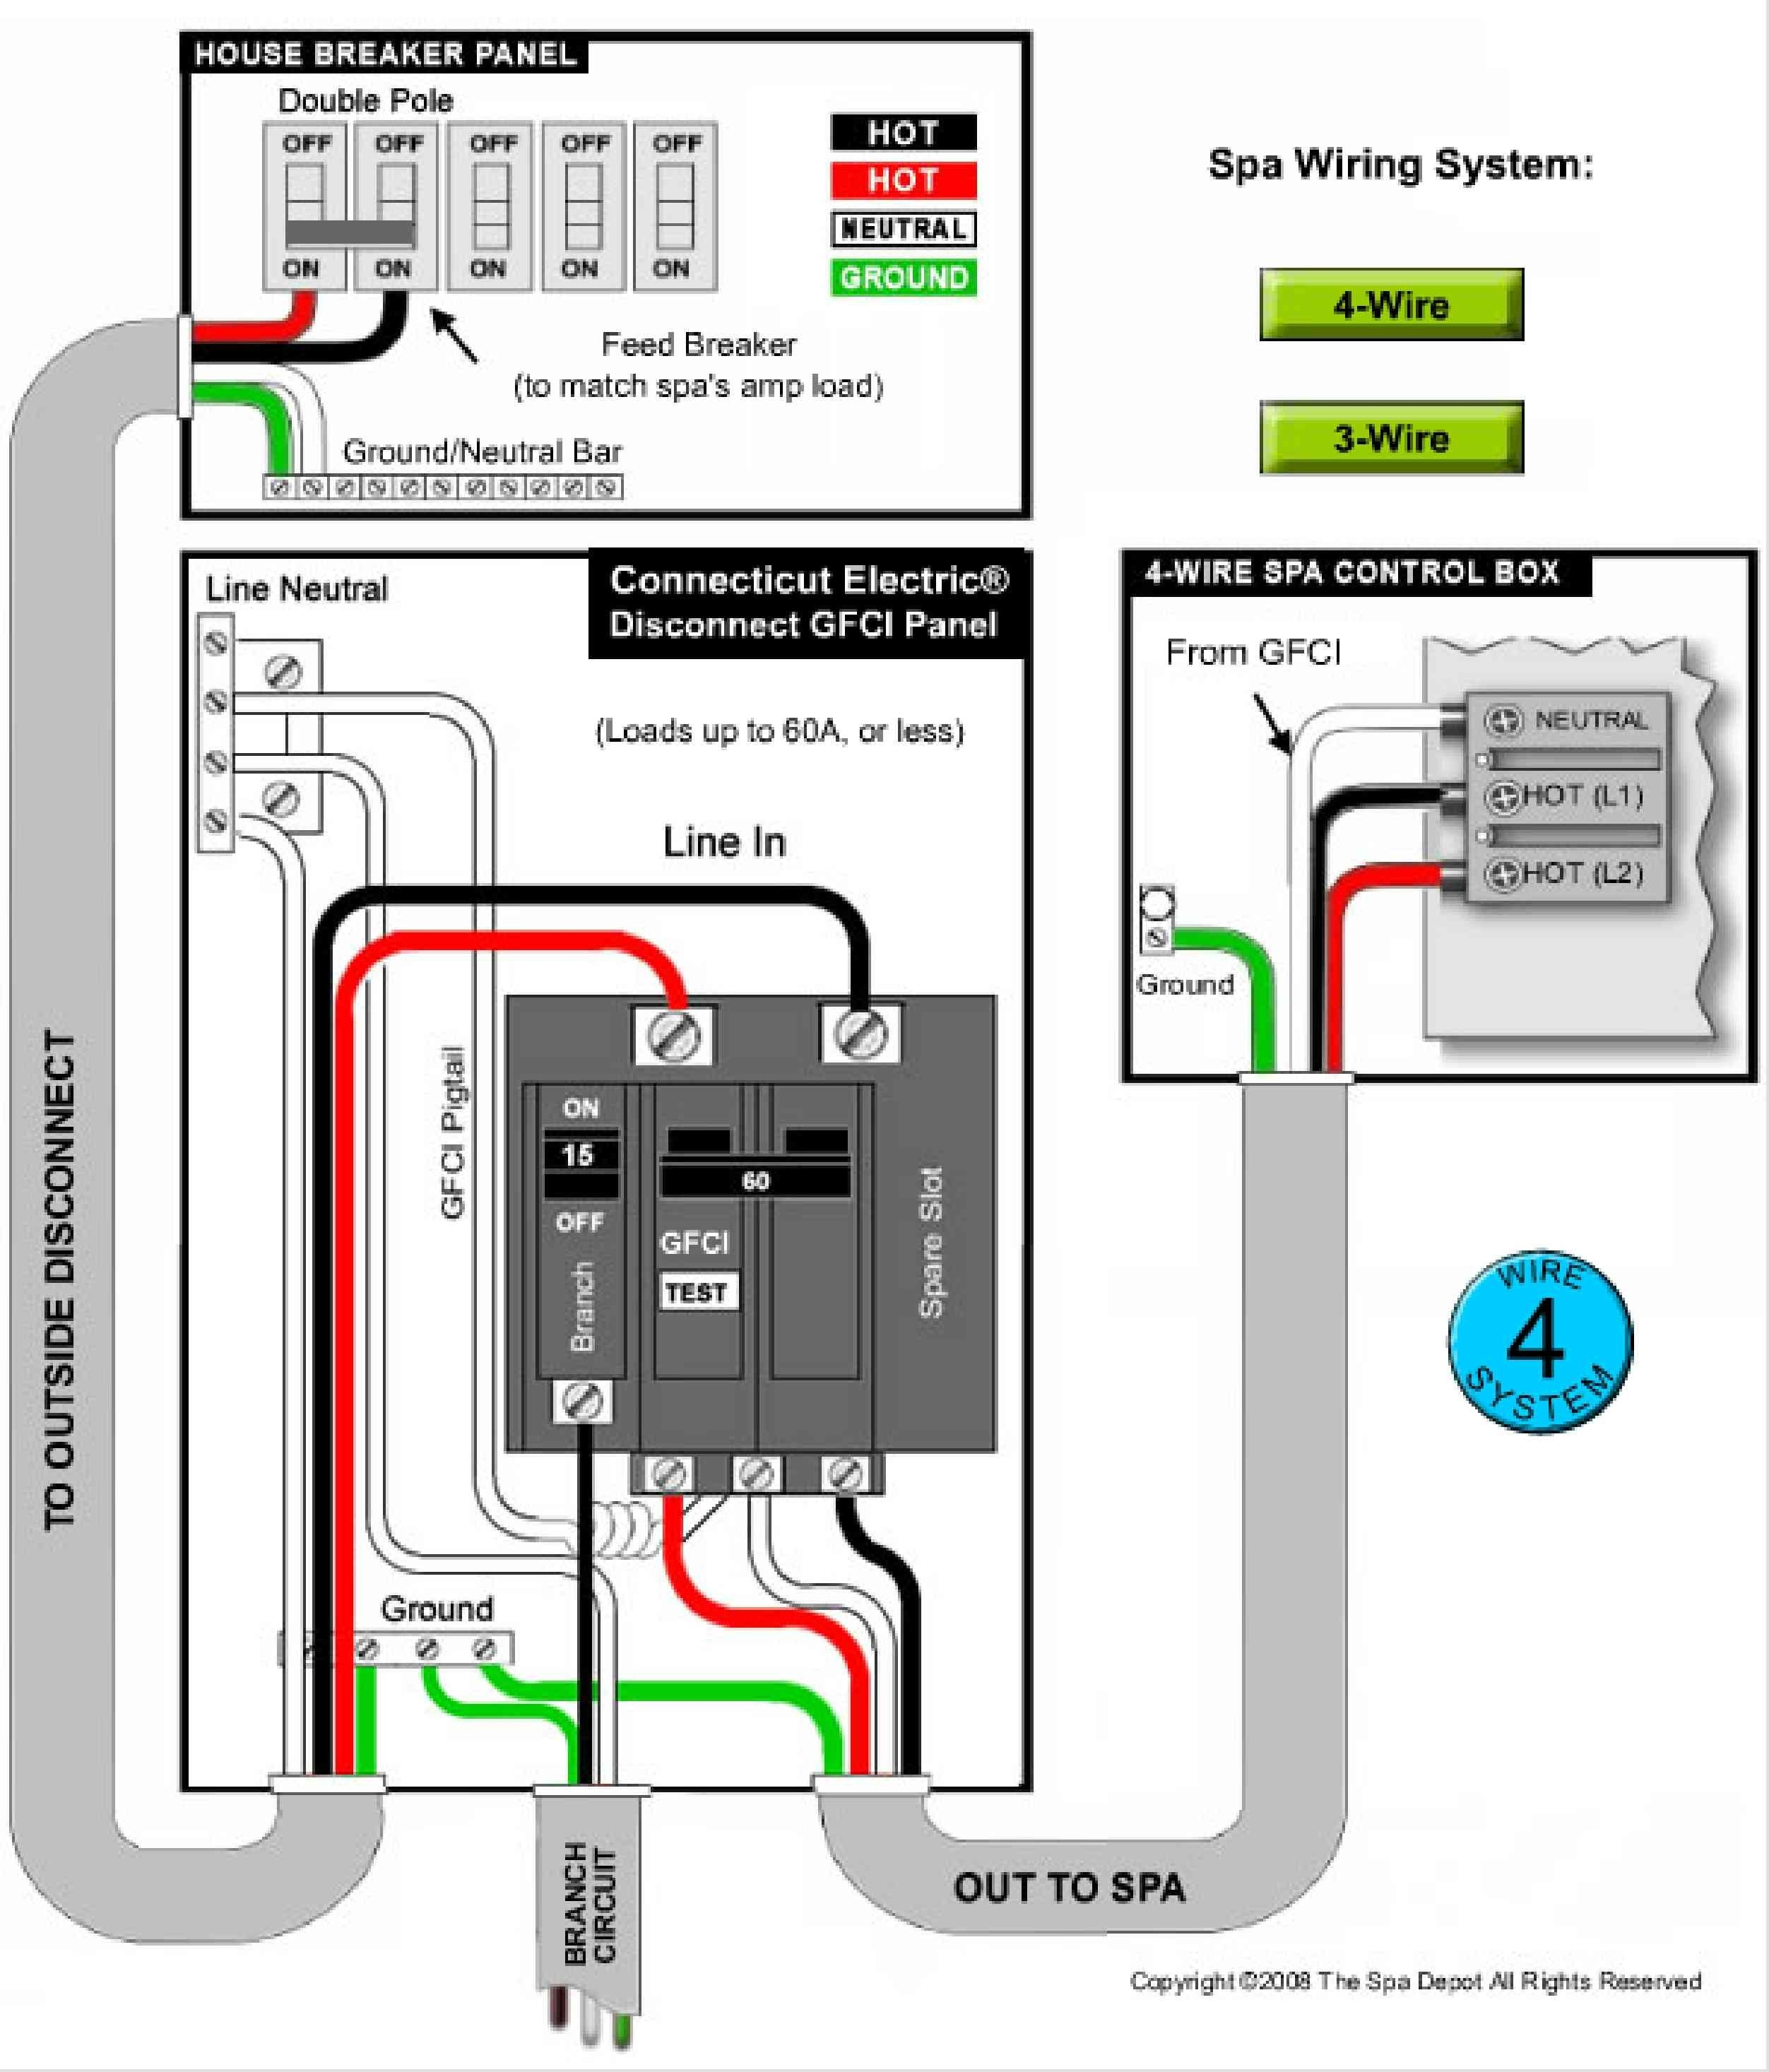 jacuzzi wiring diagram Download-hot tub wiring diagram Collection Luxury Hot Tub Wiring Diagram 14 i DOWNLOAD Wiring Diagram 10-p